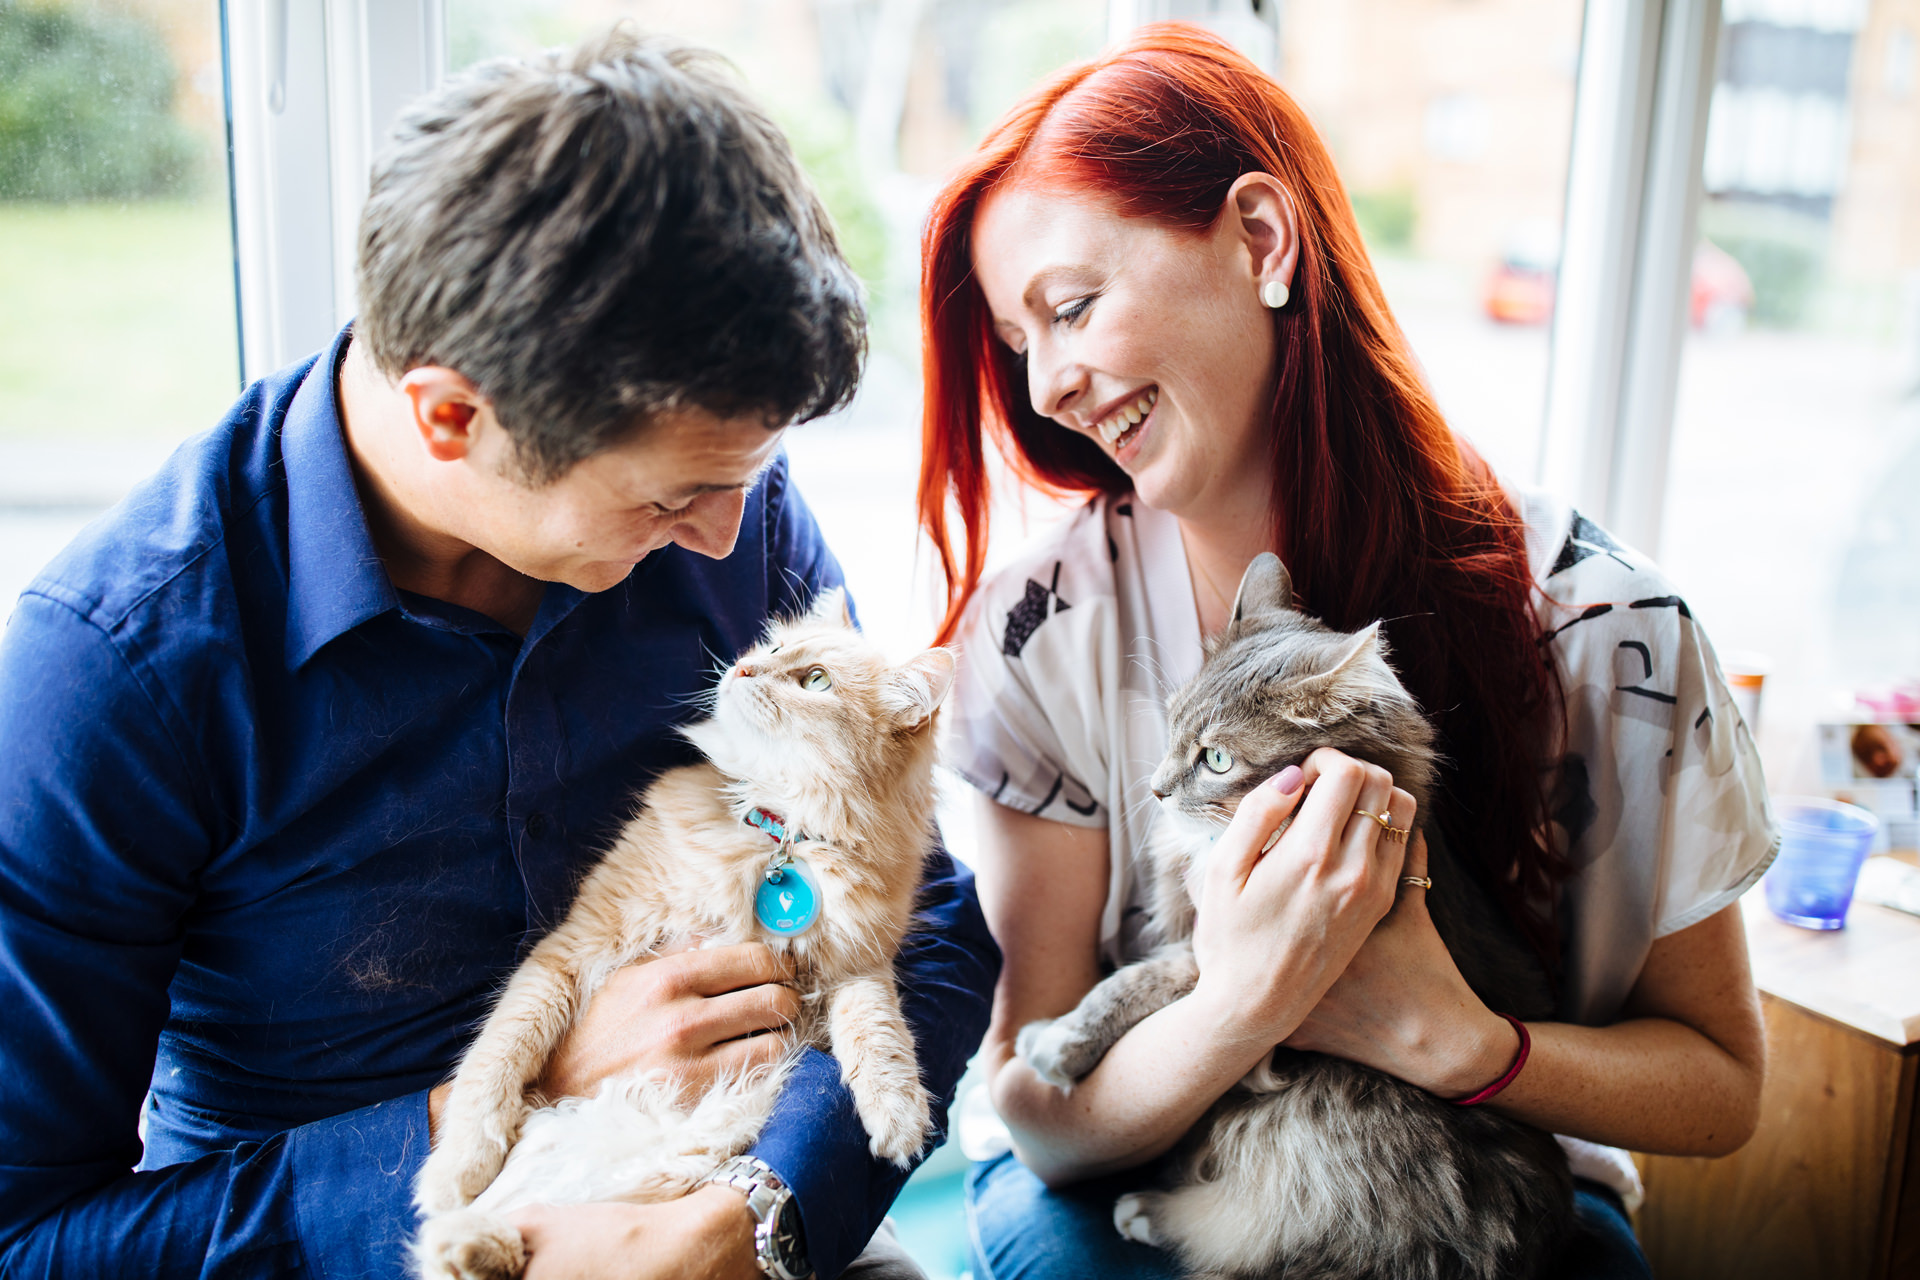 couple laughing and cuddling their cats